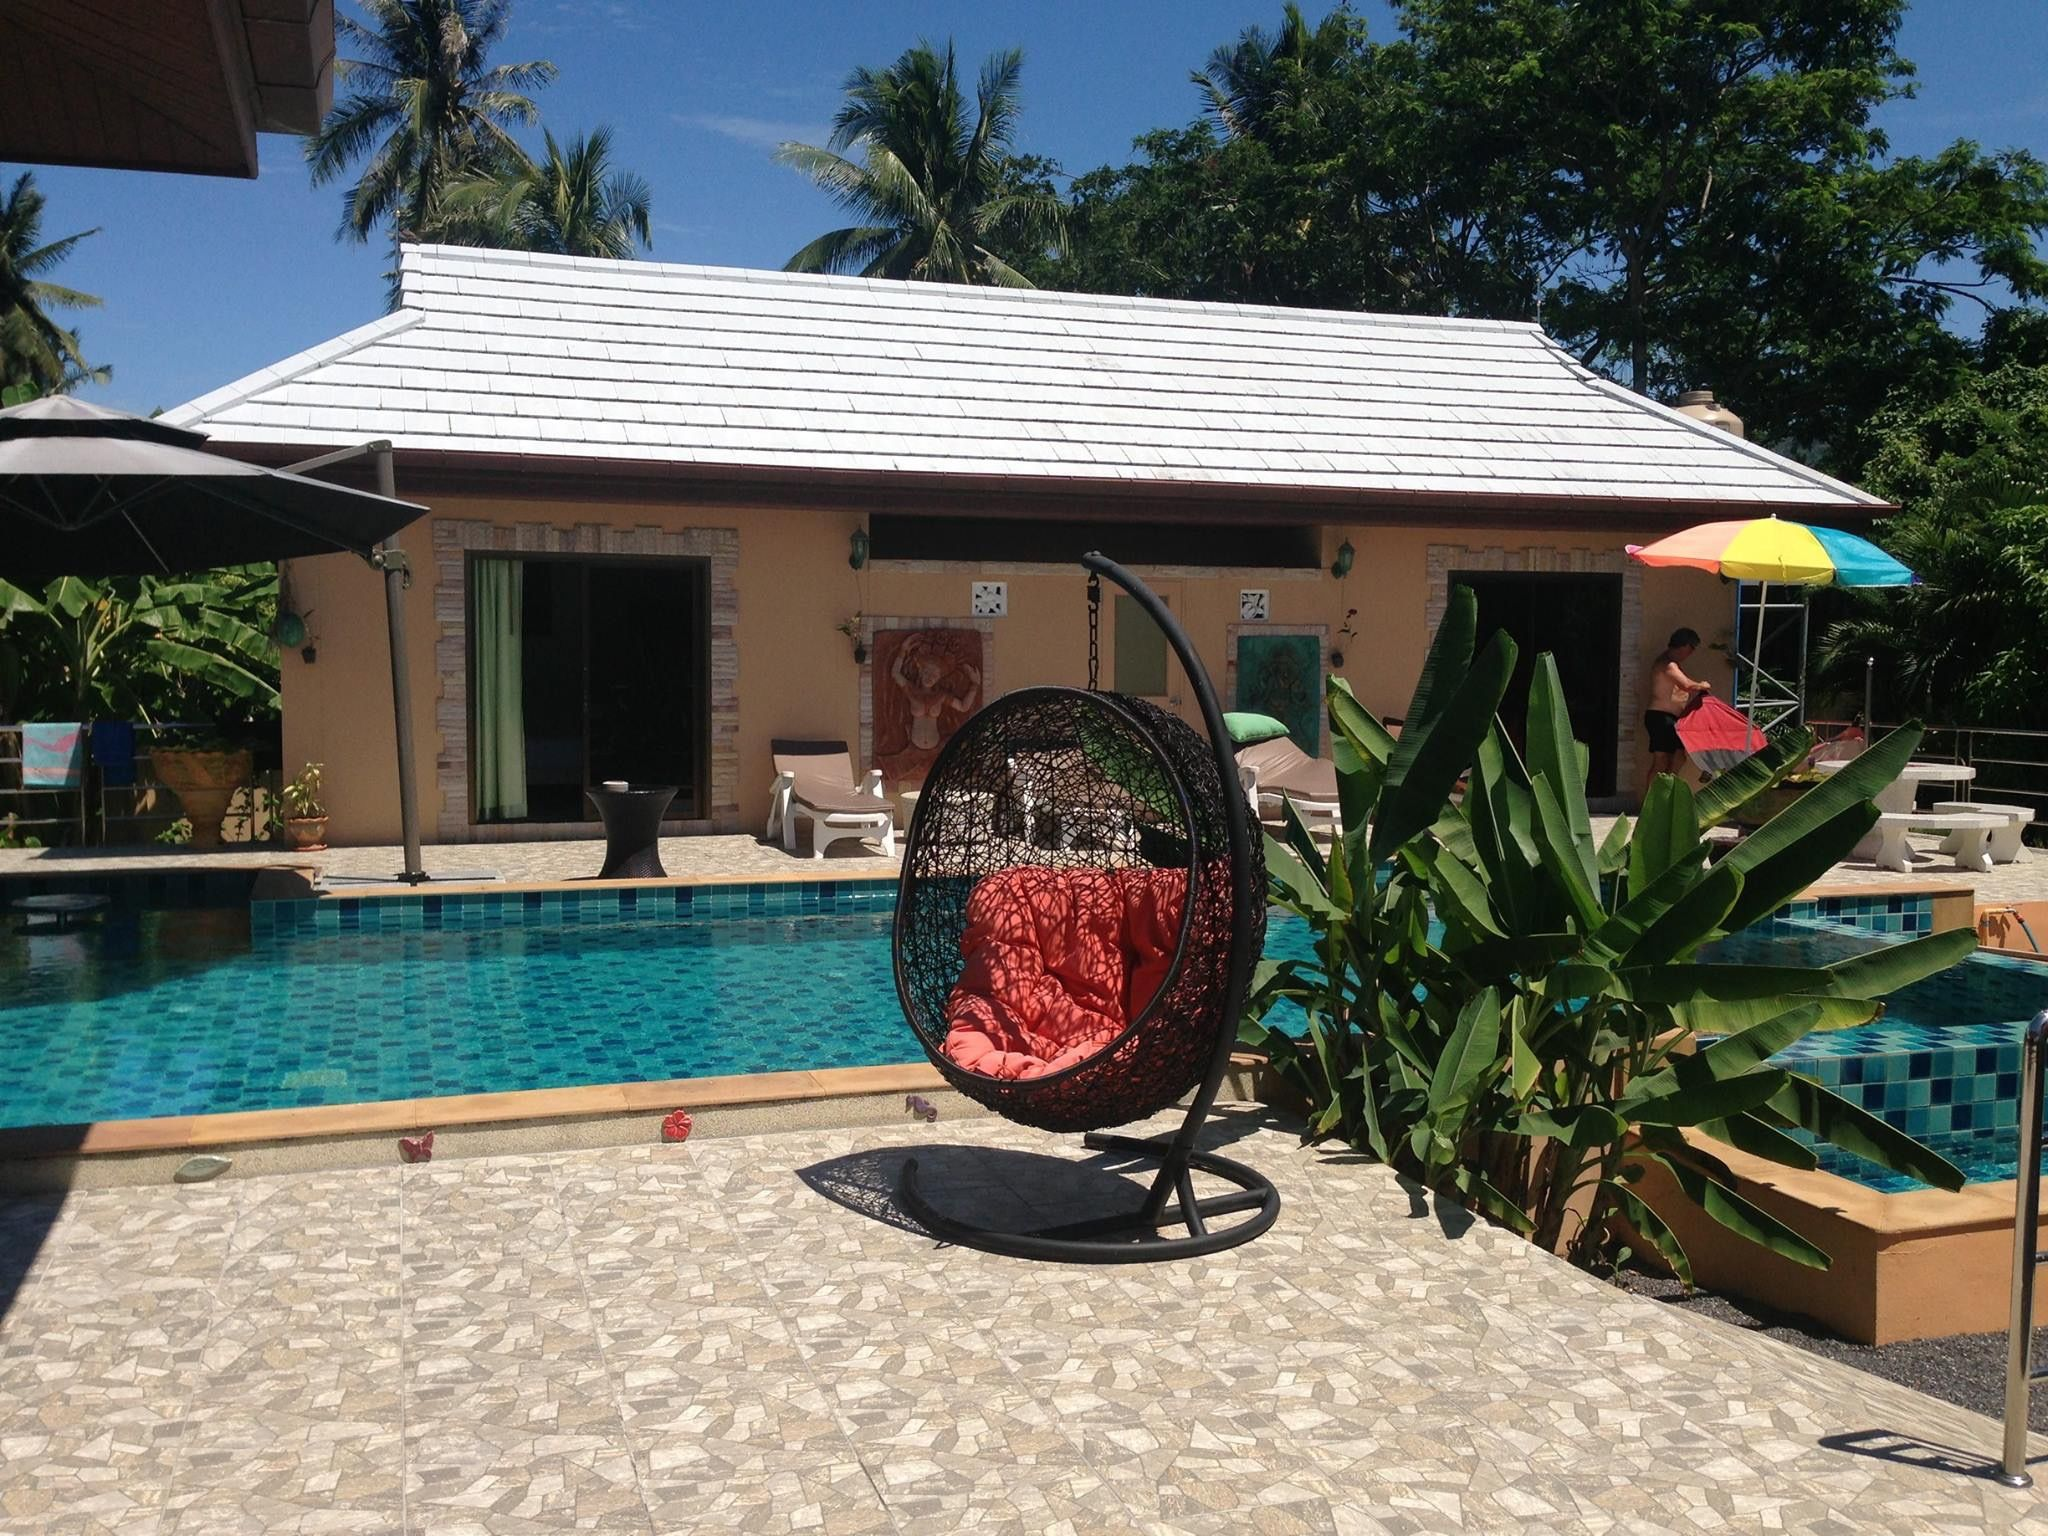 Now it's the #time for get the #best #deals in #Phuket # Thailand on #property #investment and #rental. #welcome